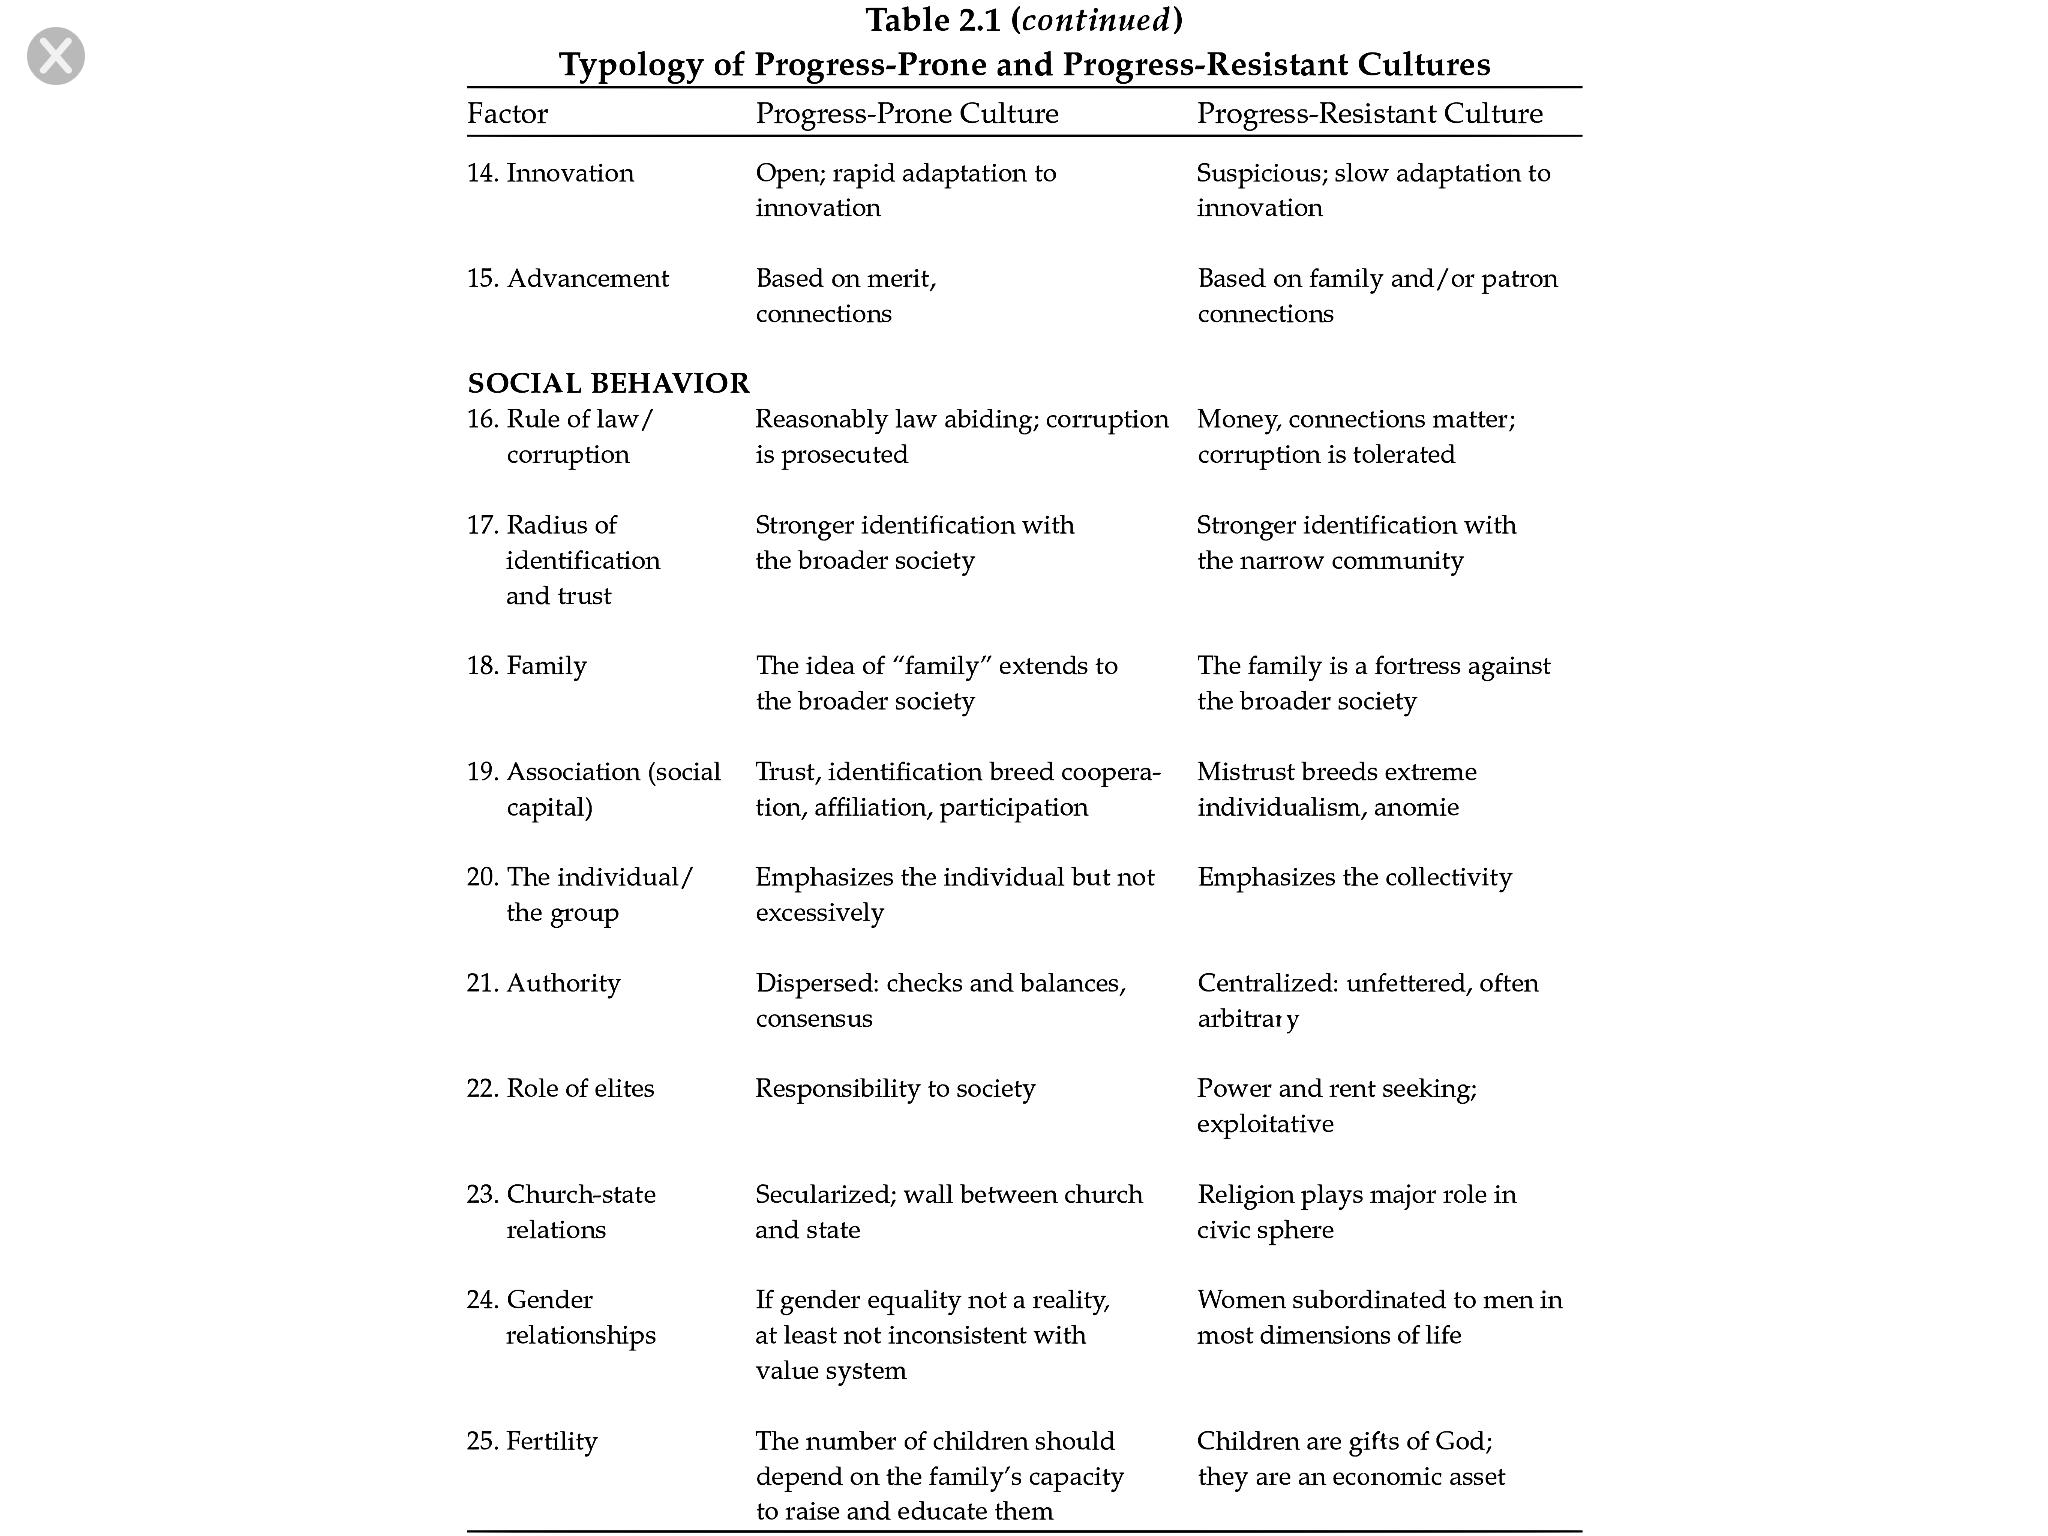 Typology of Progress-prone and progress-resistant cultures